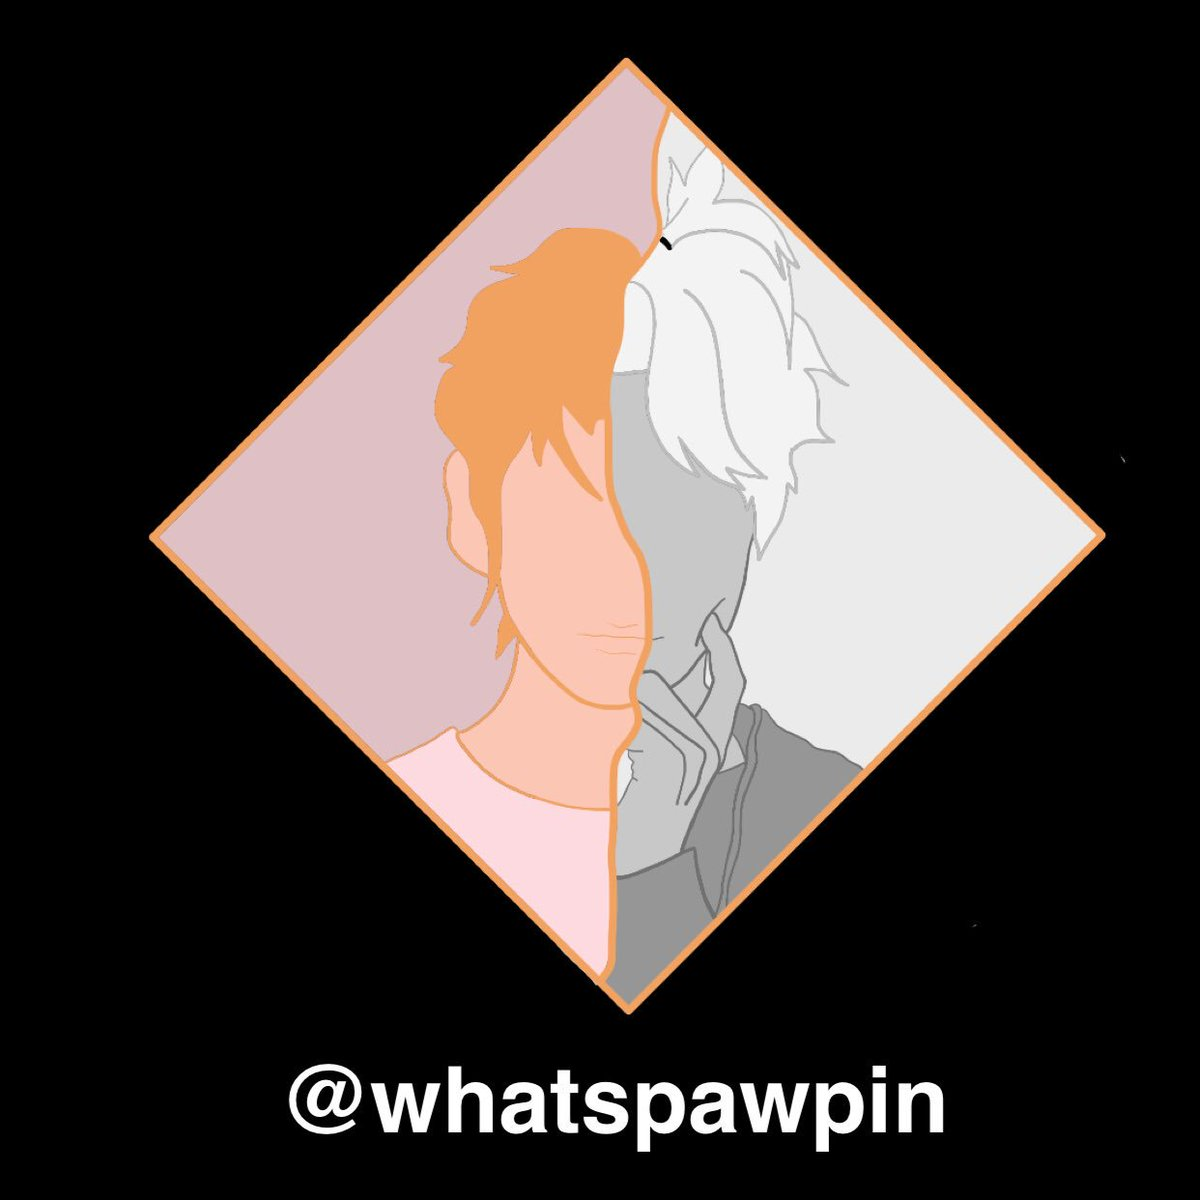 Should this be a new enamel pin design? Would you buy it